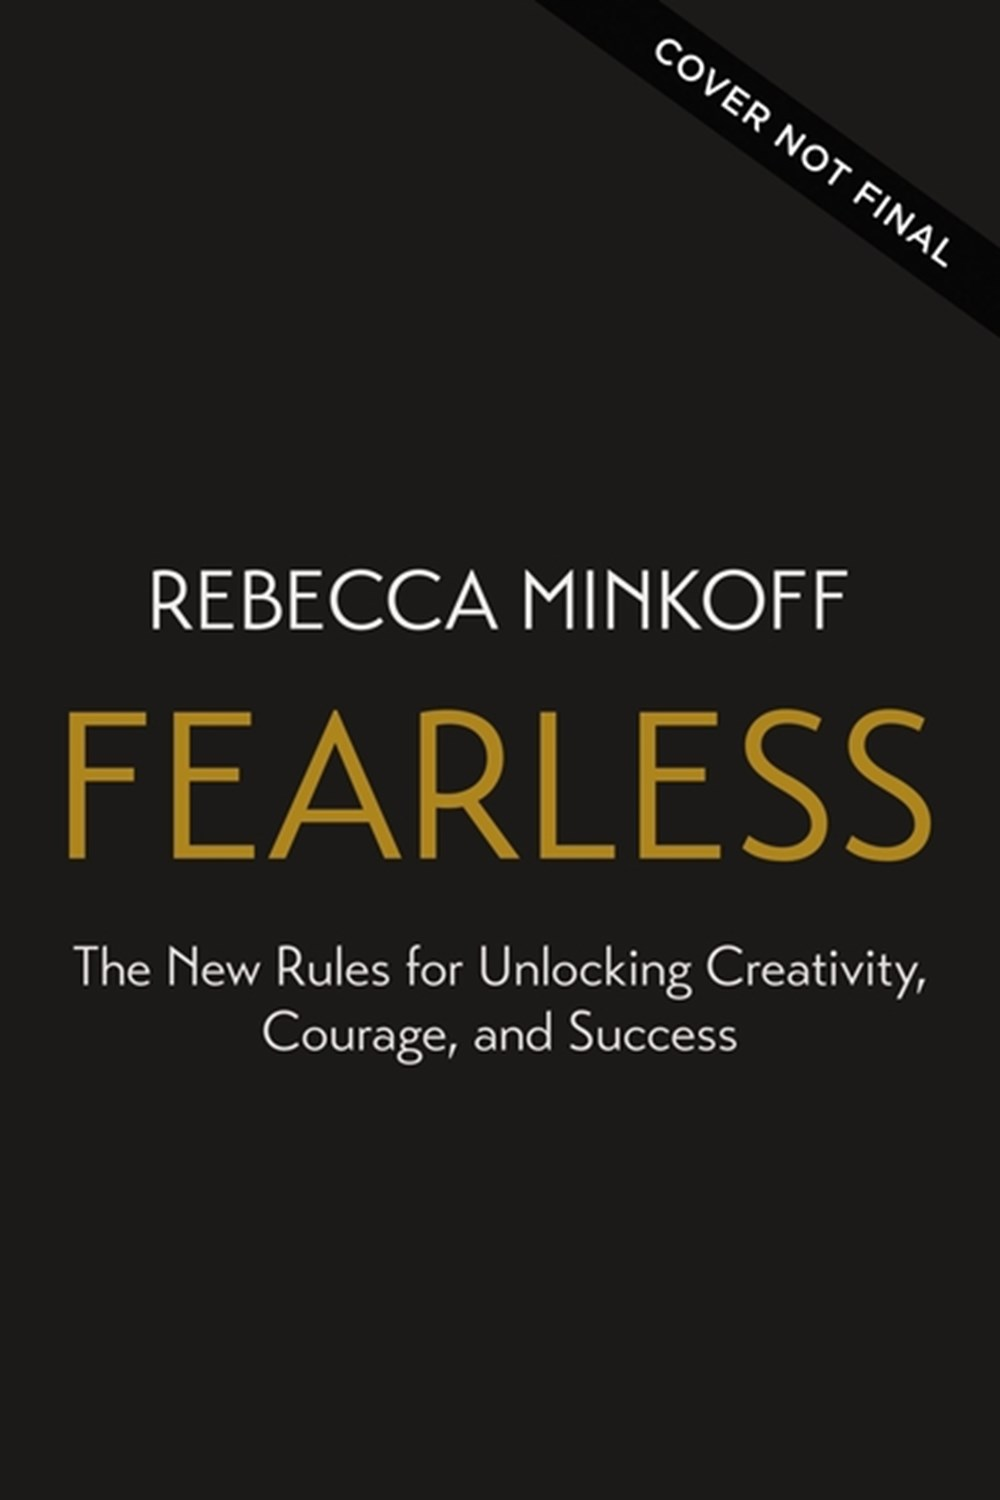 Fearless The New Rules for Unlocking Creativity, Courage, and Success